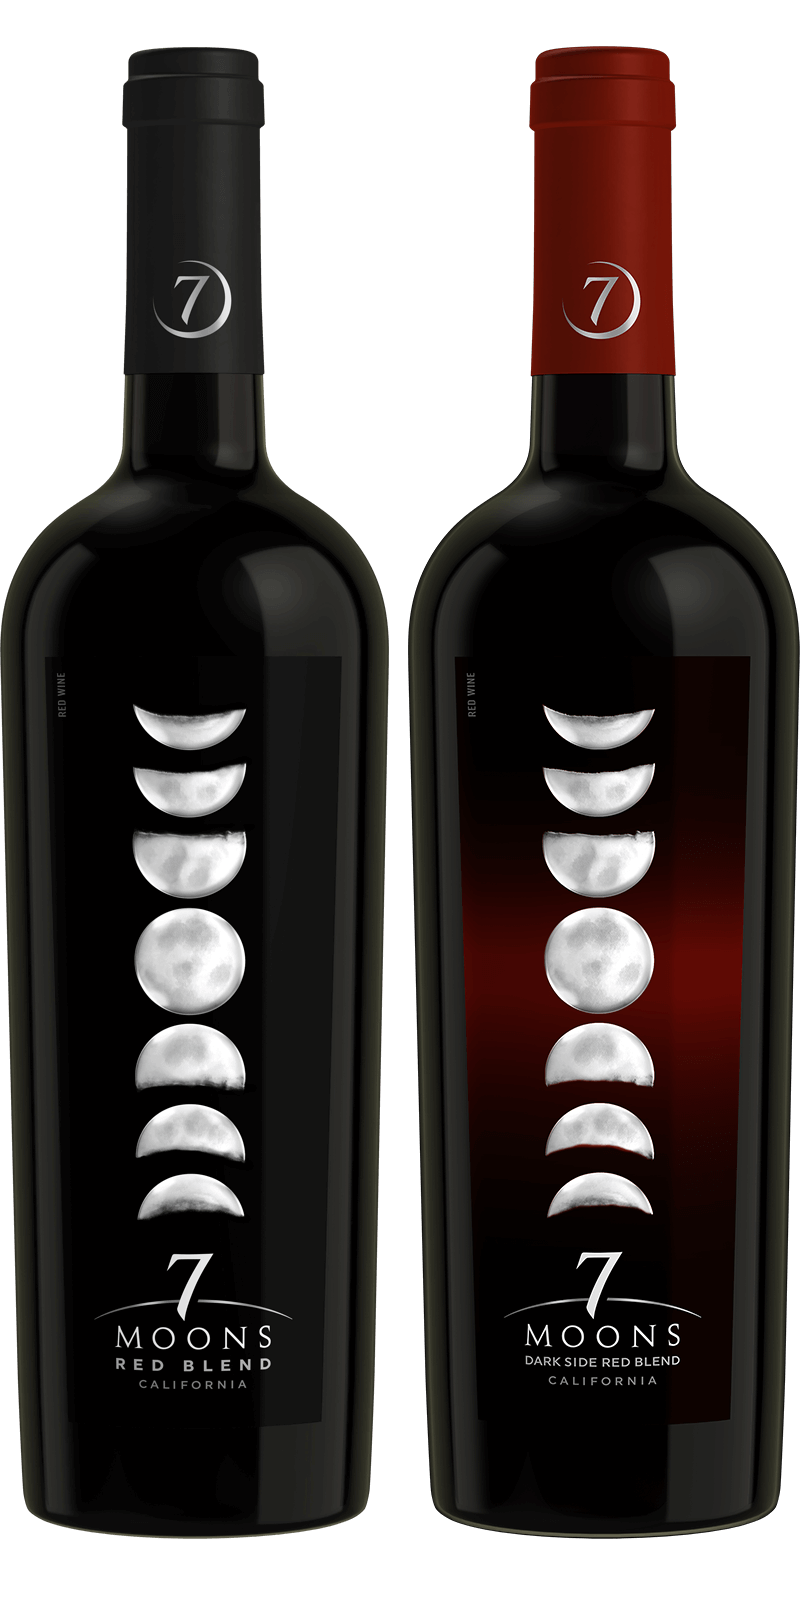 7 Moons Red Blend Wine California Red Wine